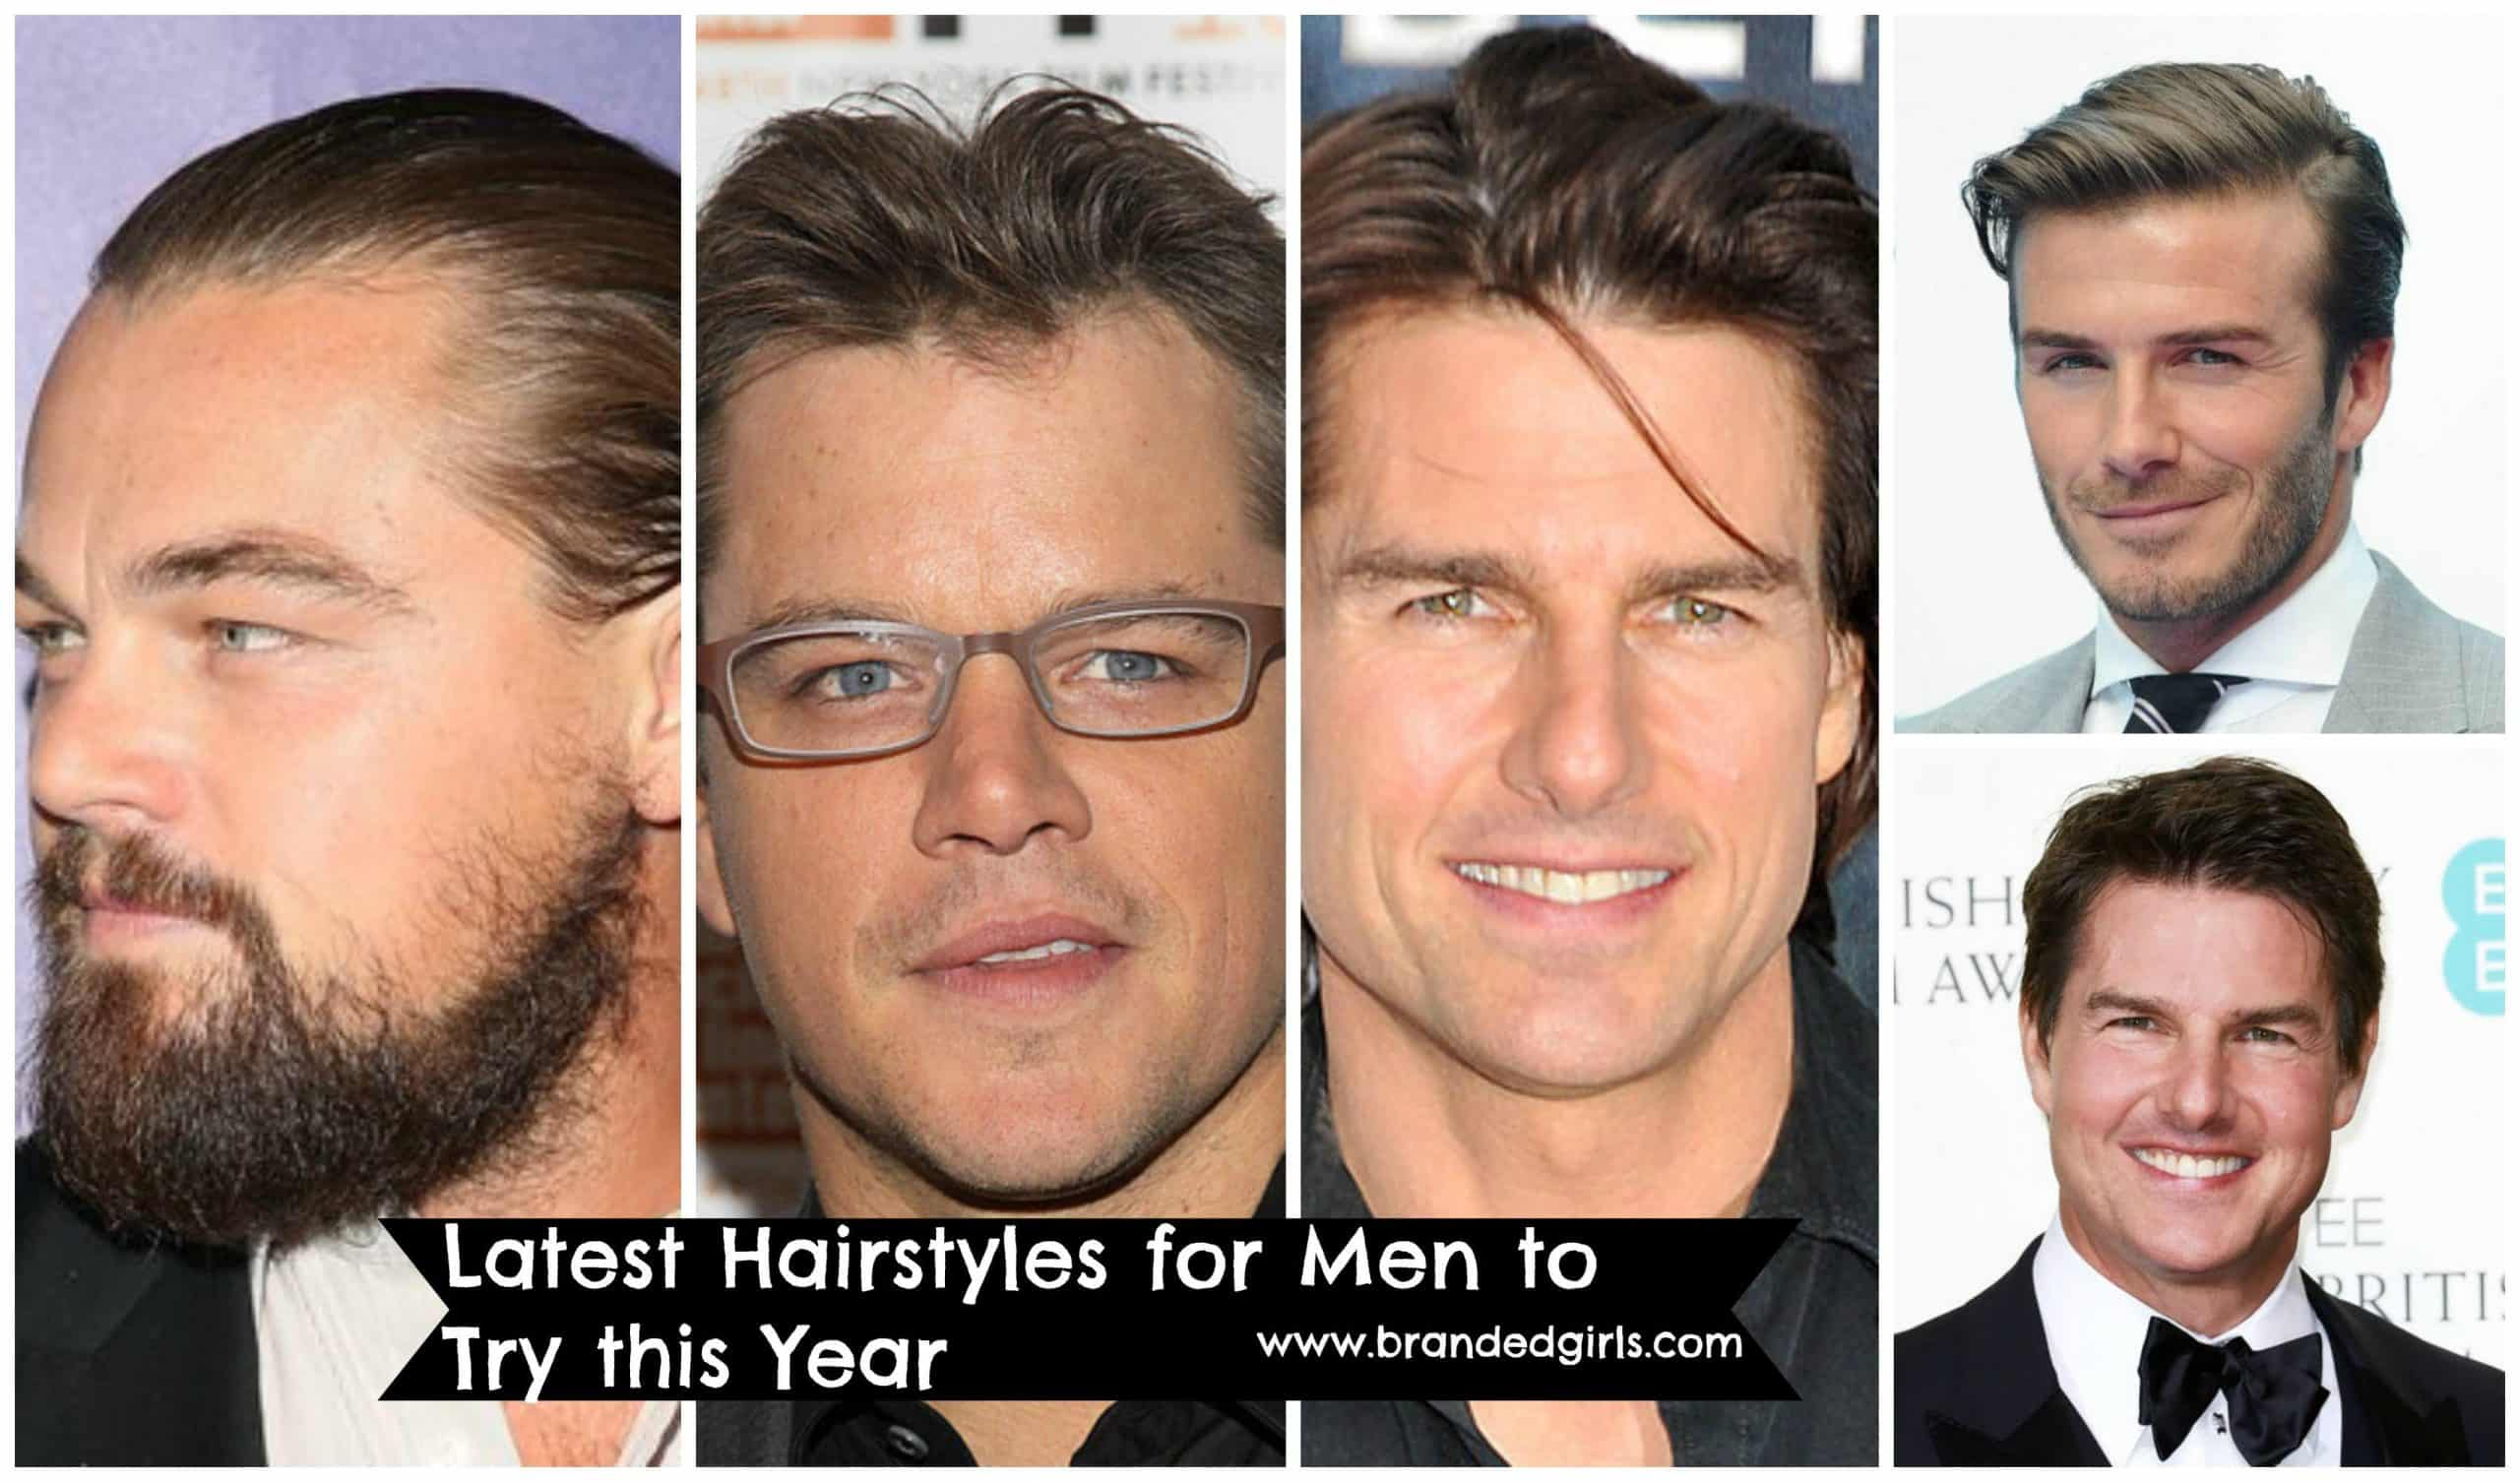 Latest Hairstyles for Men- 25 New Hair Looks to Copy in 2017